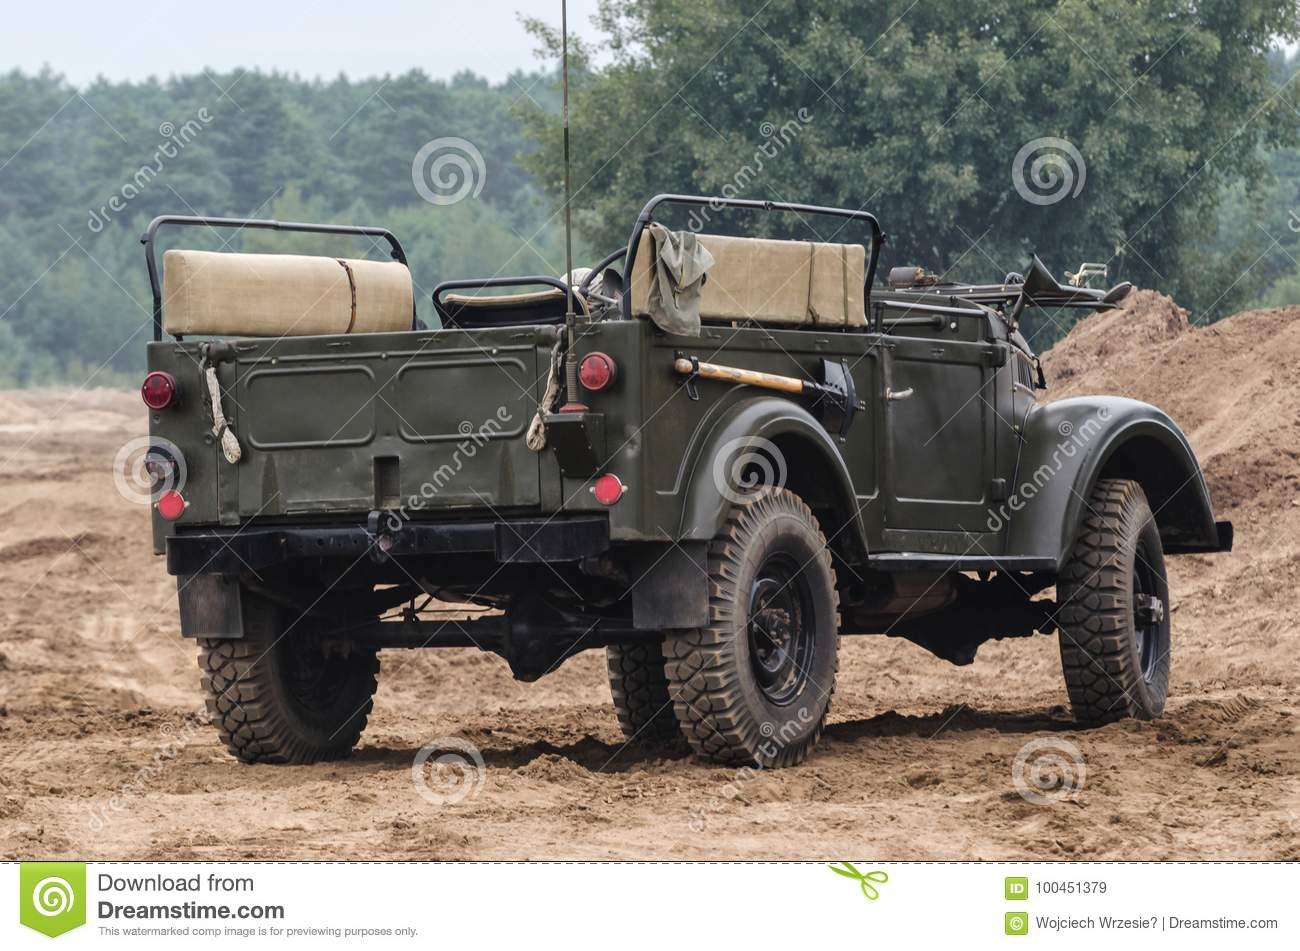 MILITARY OFF-ROAD VEHICLE